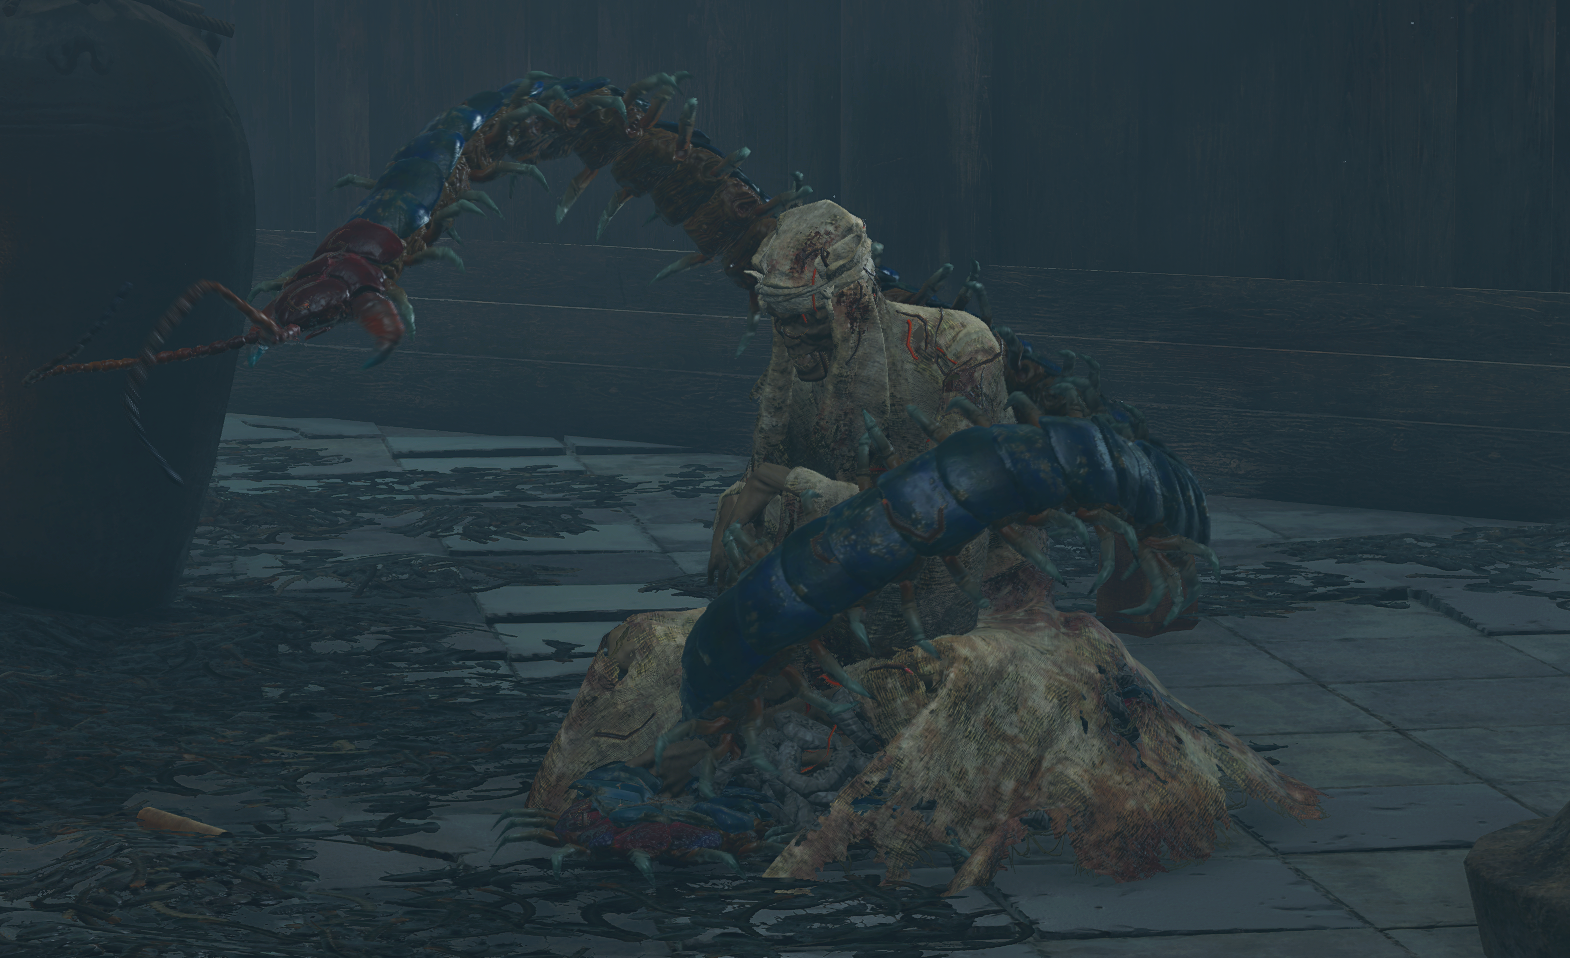 seeker-fist-gallery-1-sekiro-wiki-guide-300px